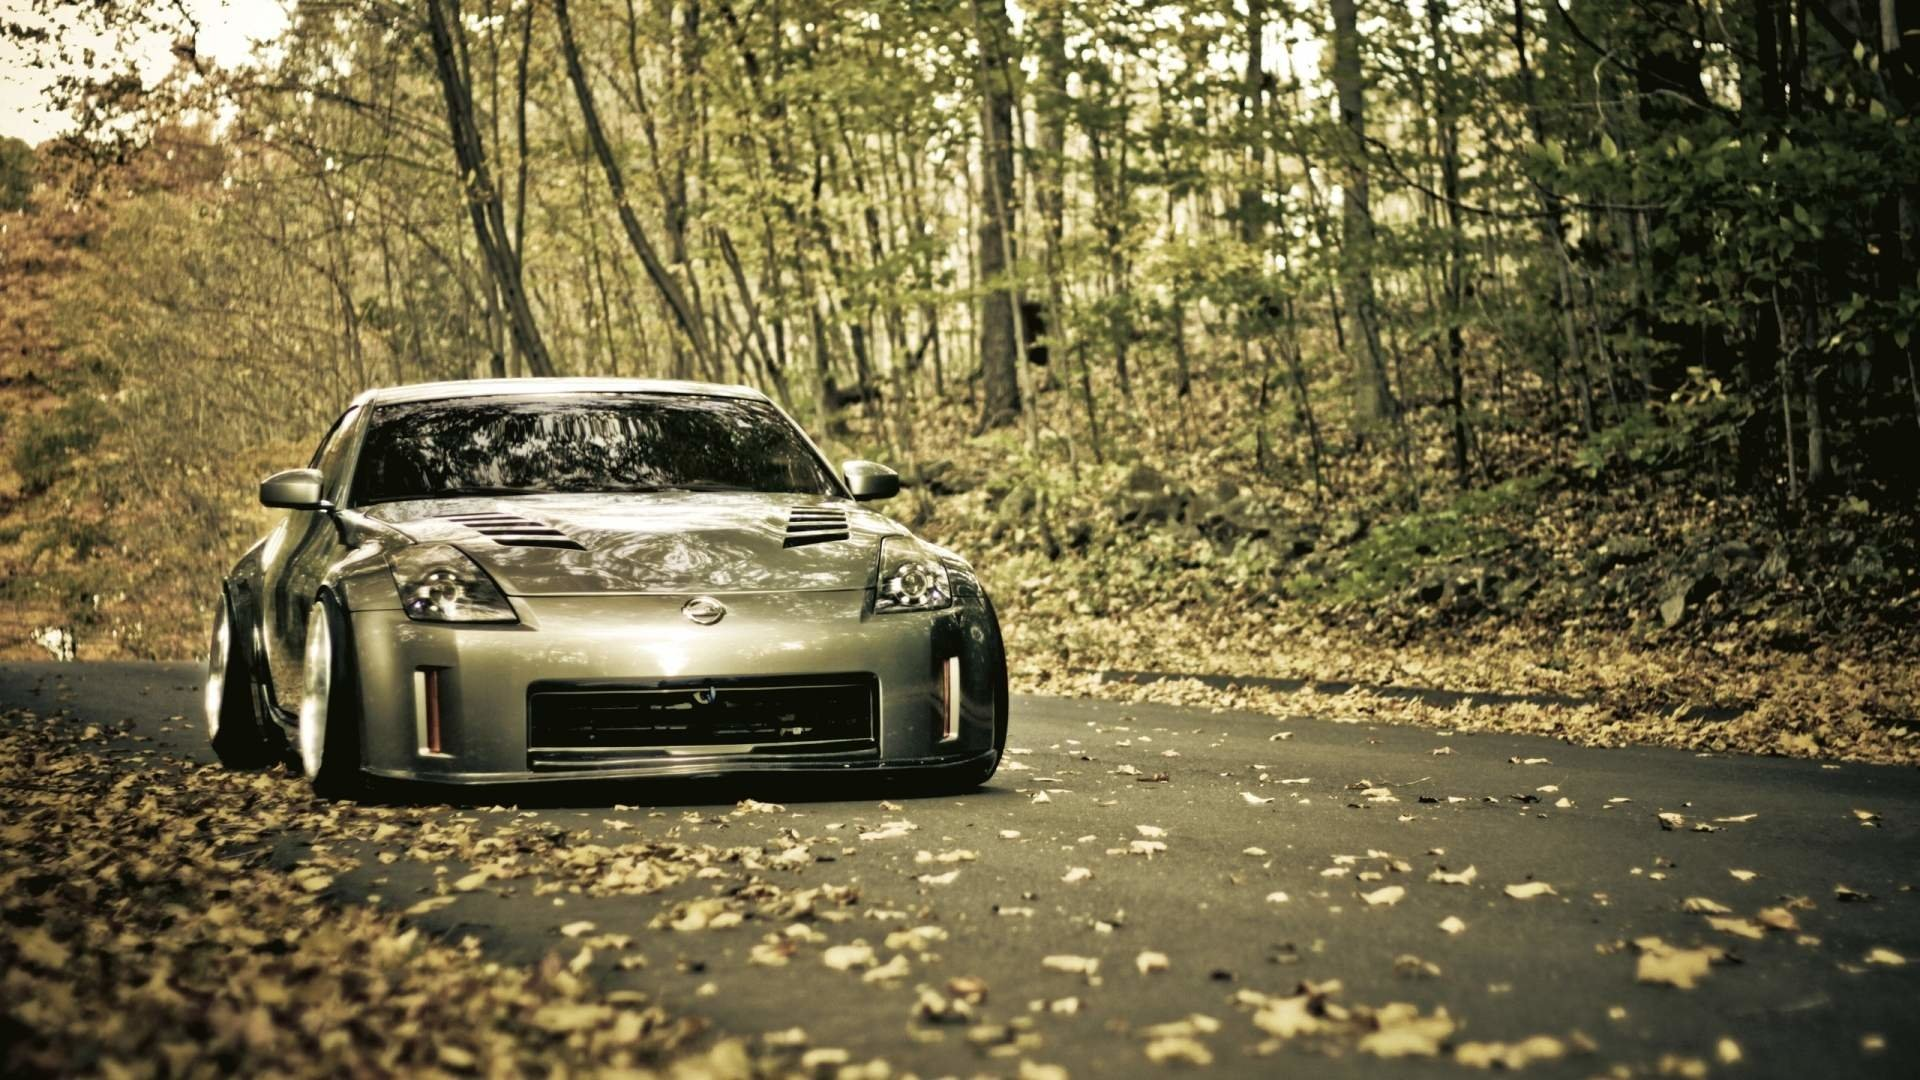 1920x1080 - Nissan 350Z Wallpapers 1